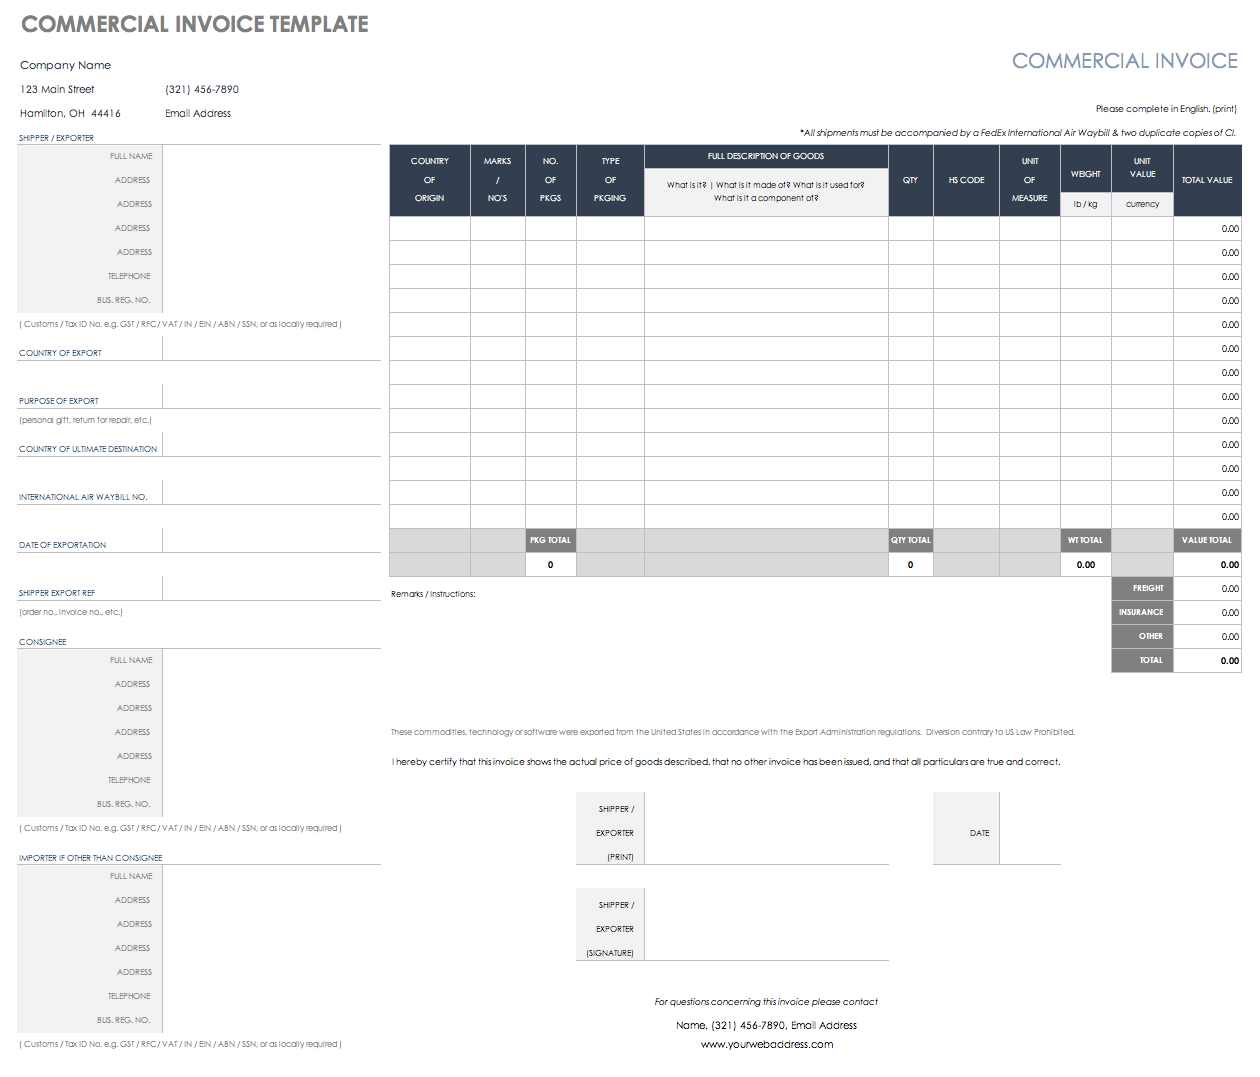 Free Shipping And Packing Templates  Smartsheet Throughout Commercial Invoice Packing List Template